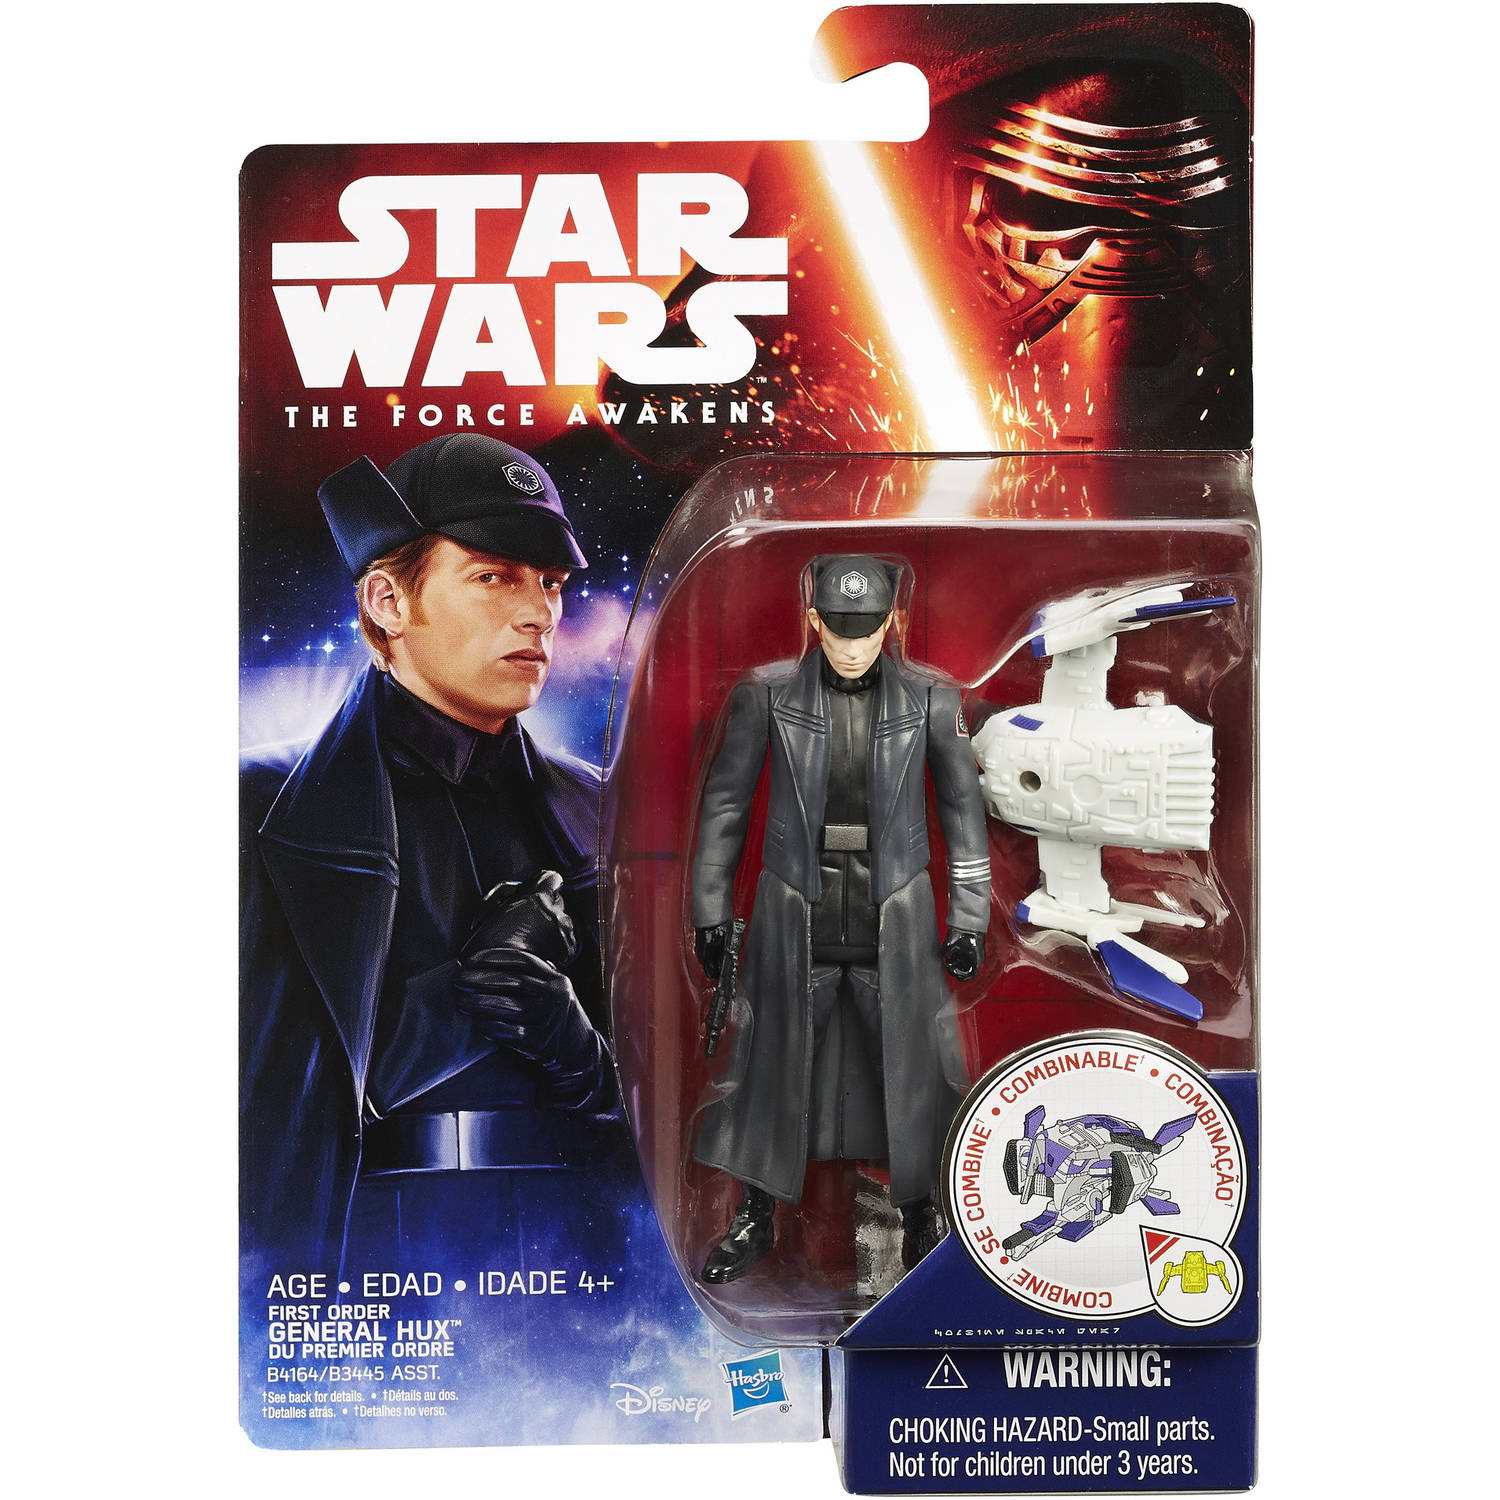 Star Wars: The Force Awakens - General Hux Figure